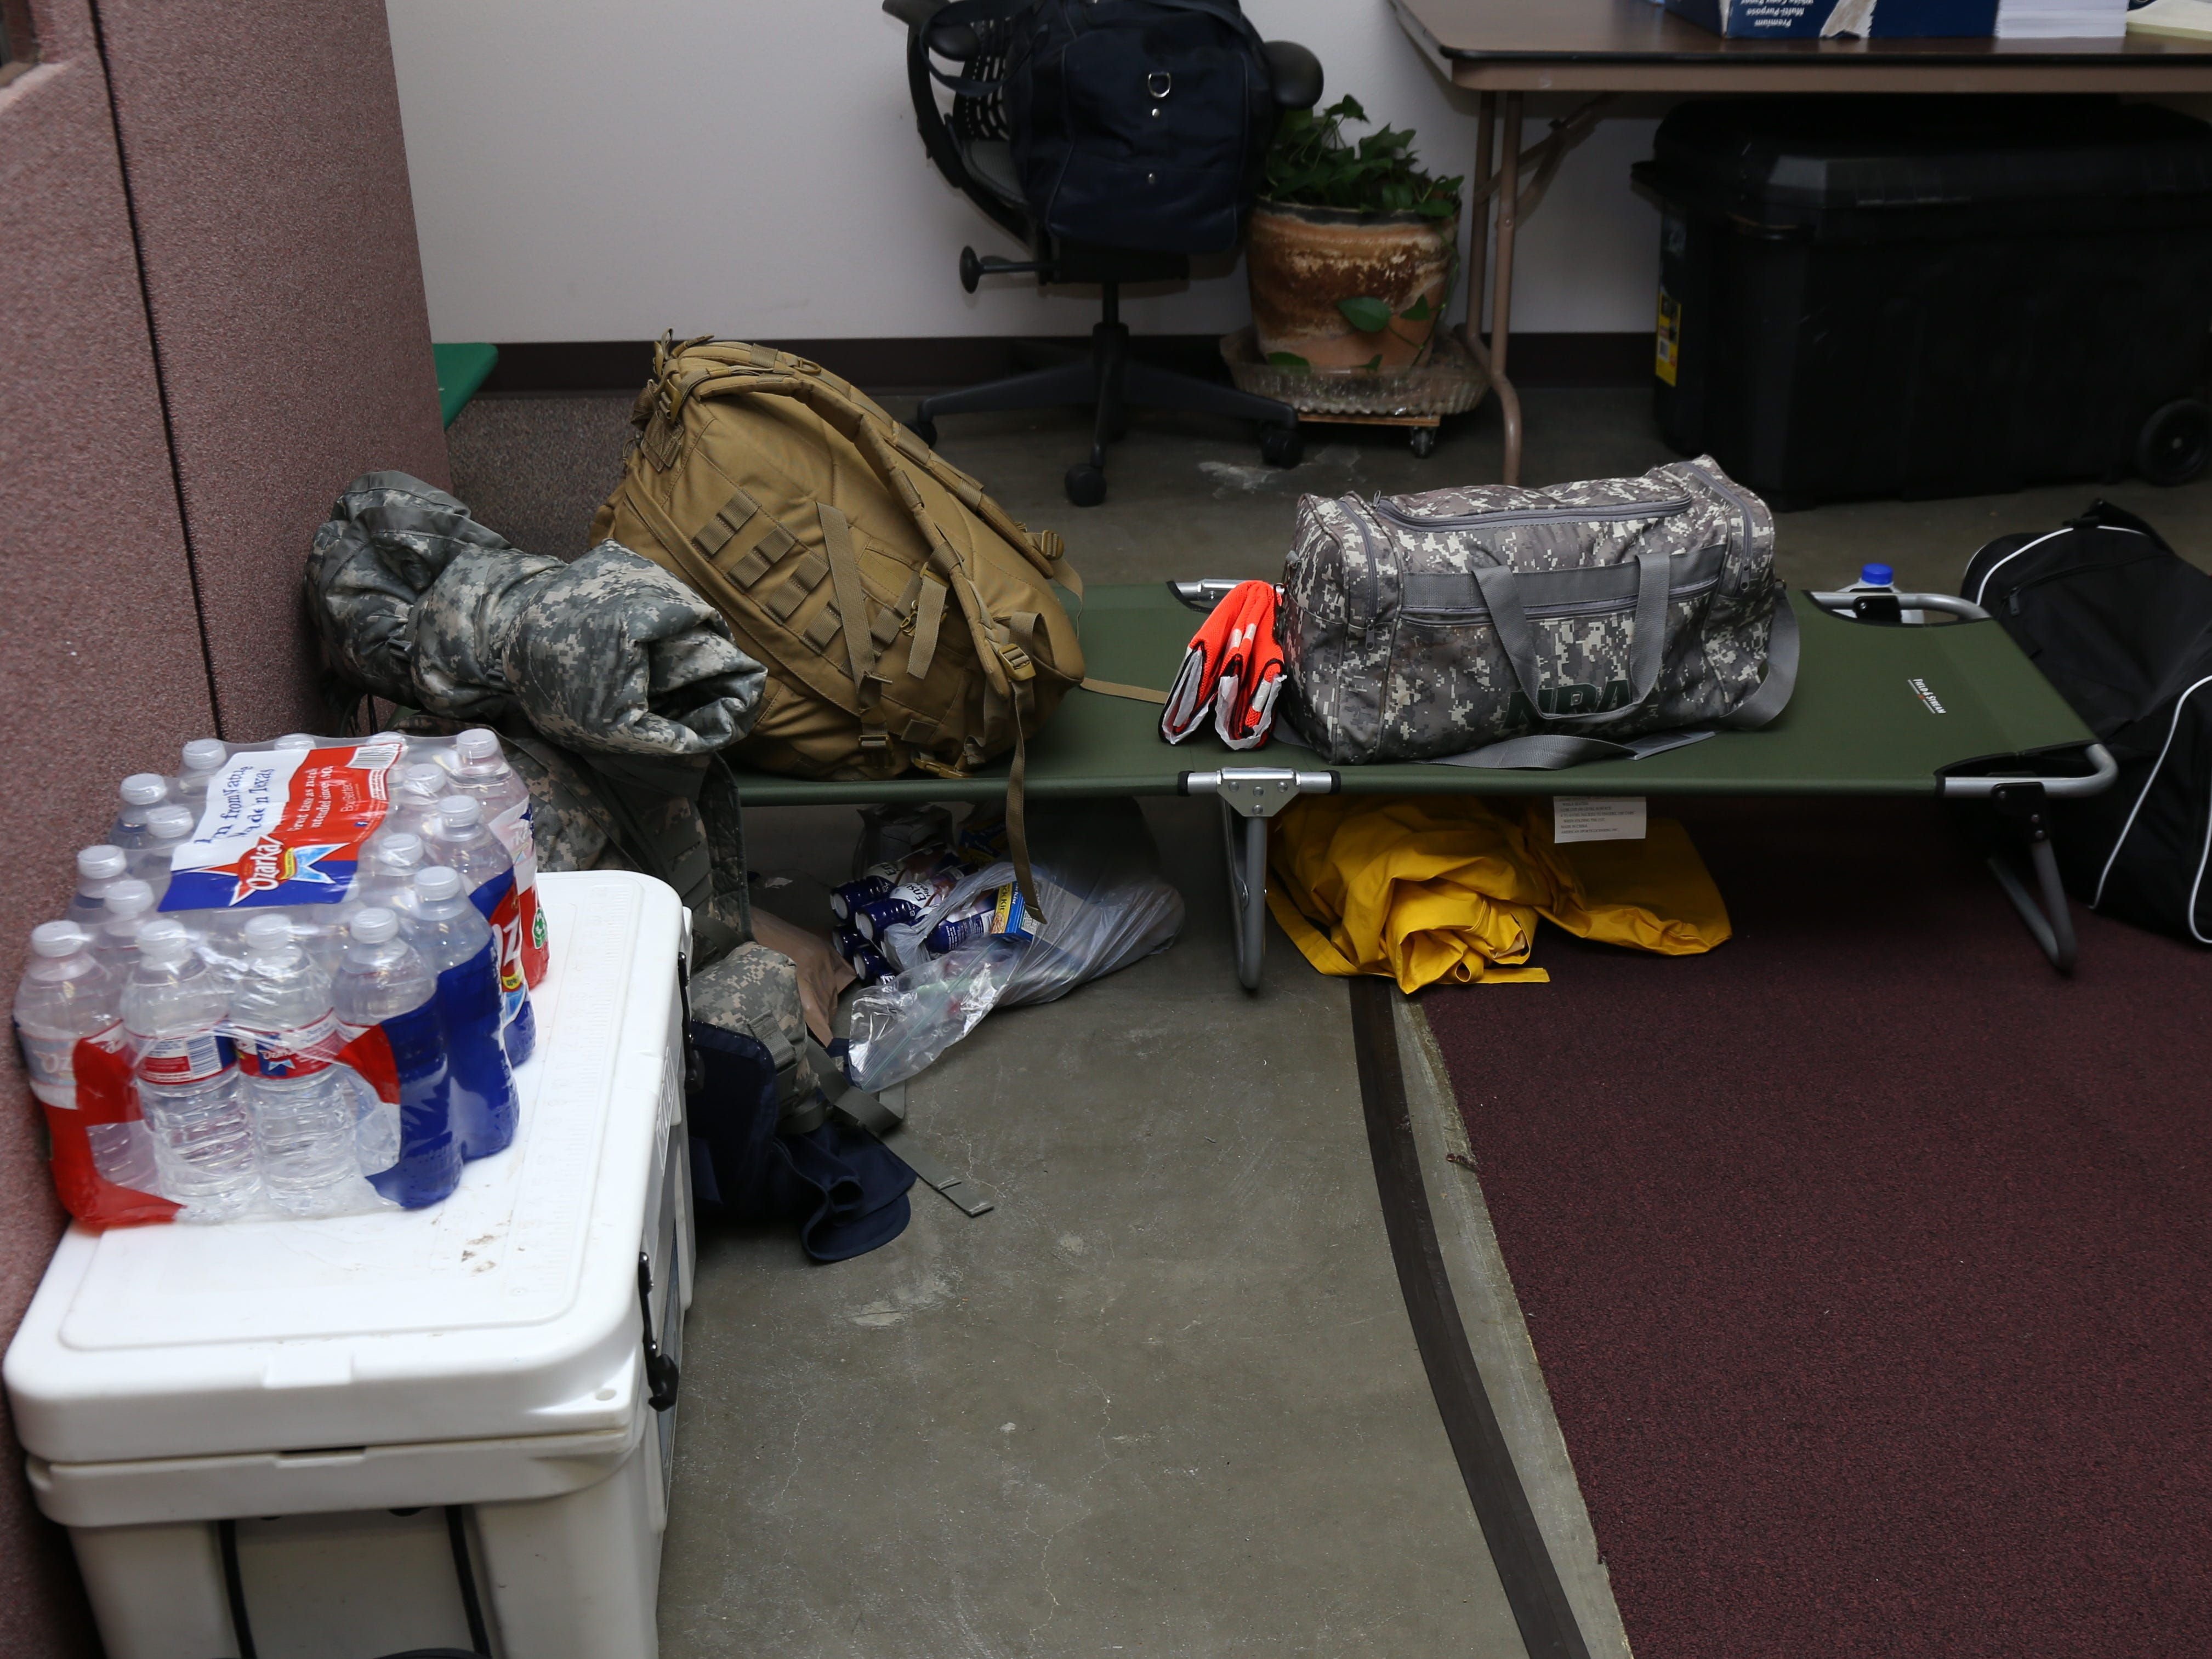 Corpus Christi police officers were provided with cots to sleep on while they sheltered in place as Hurricane Harvey made landfall on the Texas Coast on August 25, 2017.